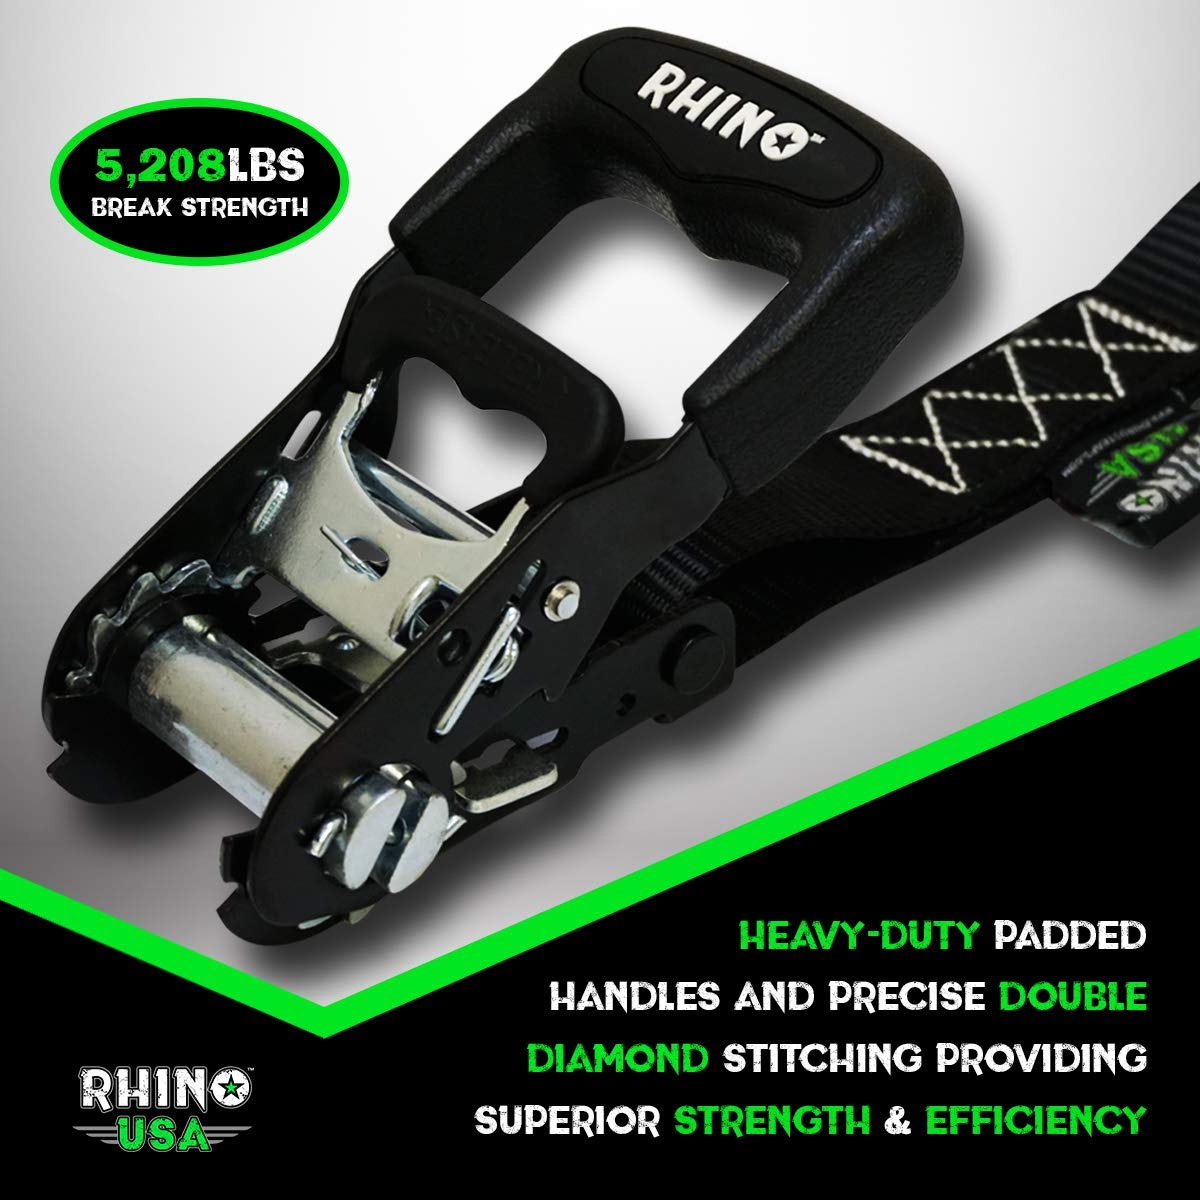 BLUE Heavy Duty 1.6 x 8 Rachet Tiedowns with Padded Handles /& Coated Chromoly S Hooks + Soft Loop Tie-Downs 5,208 Break Strength - RHINO USA Ratchet Straps Motorcycle Tie Down Kit 2 HDKIT-4PACK-BLU 2